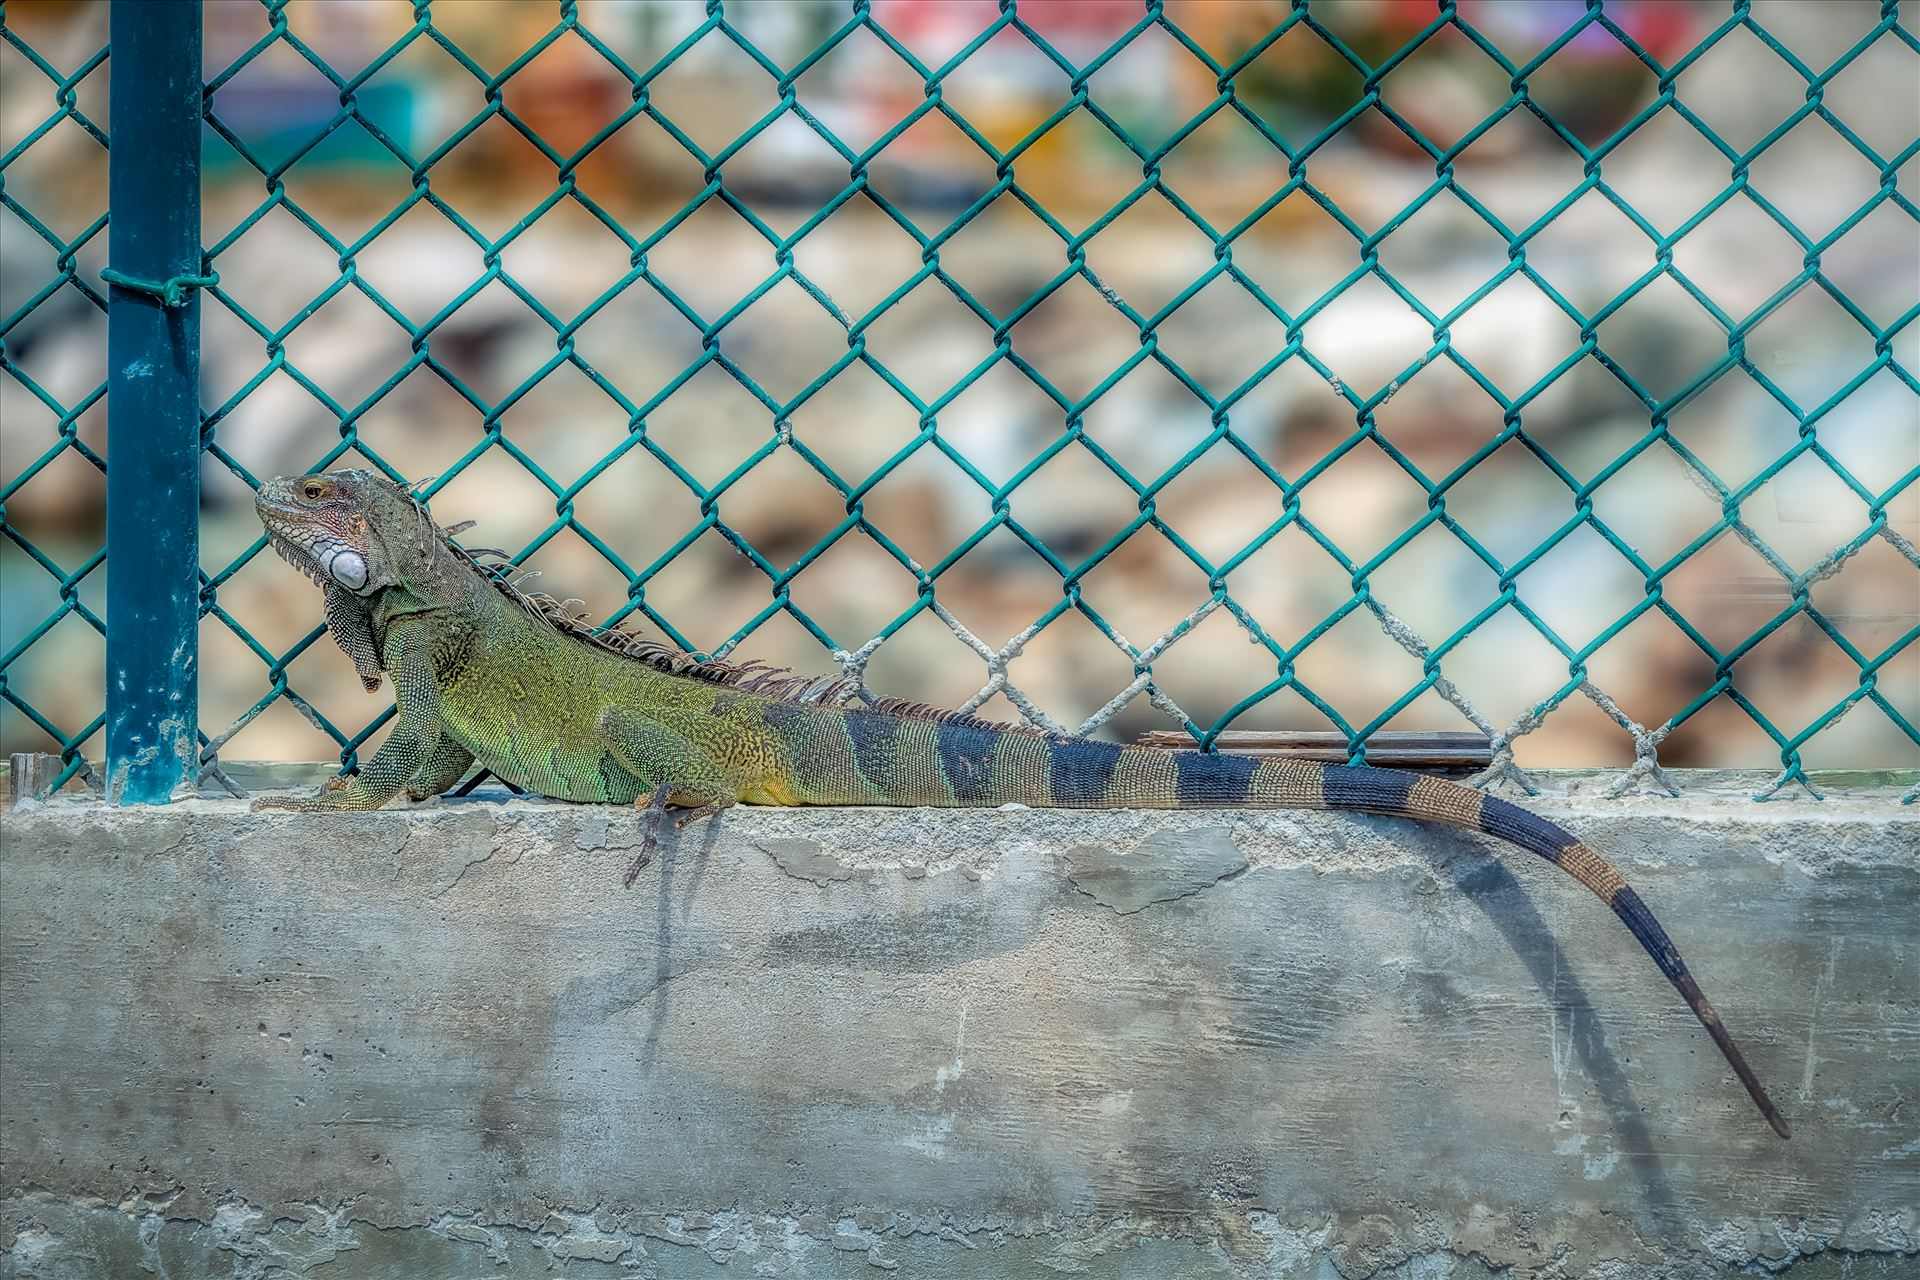 Iguana Iguana sitting on concrete next to green chainlink fence by Terry Kelly Photography